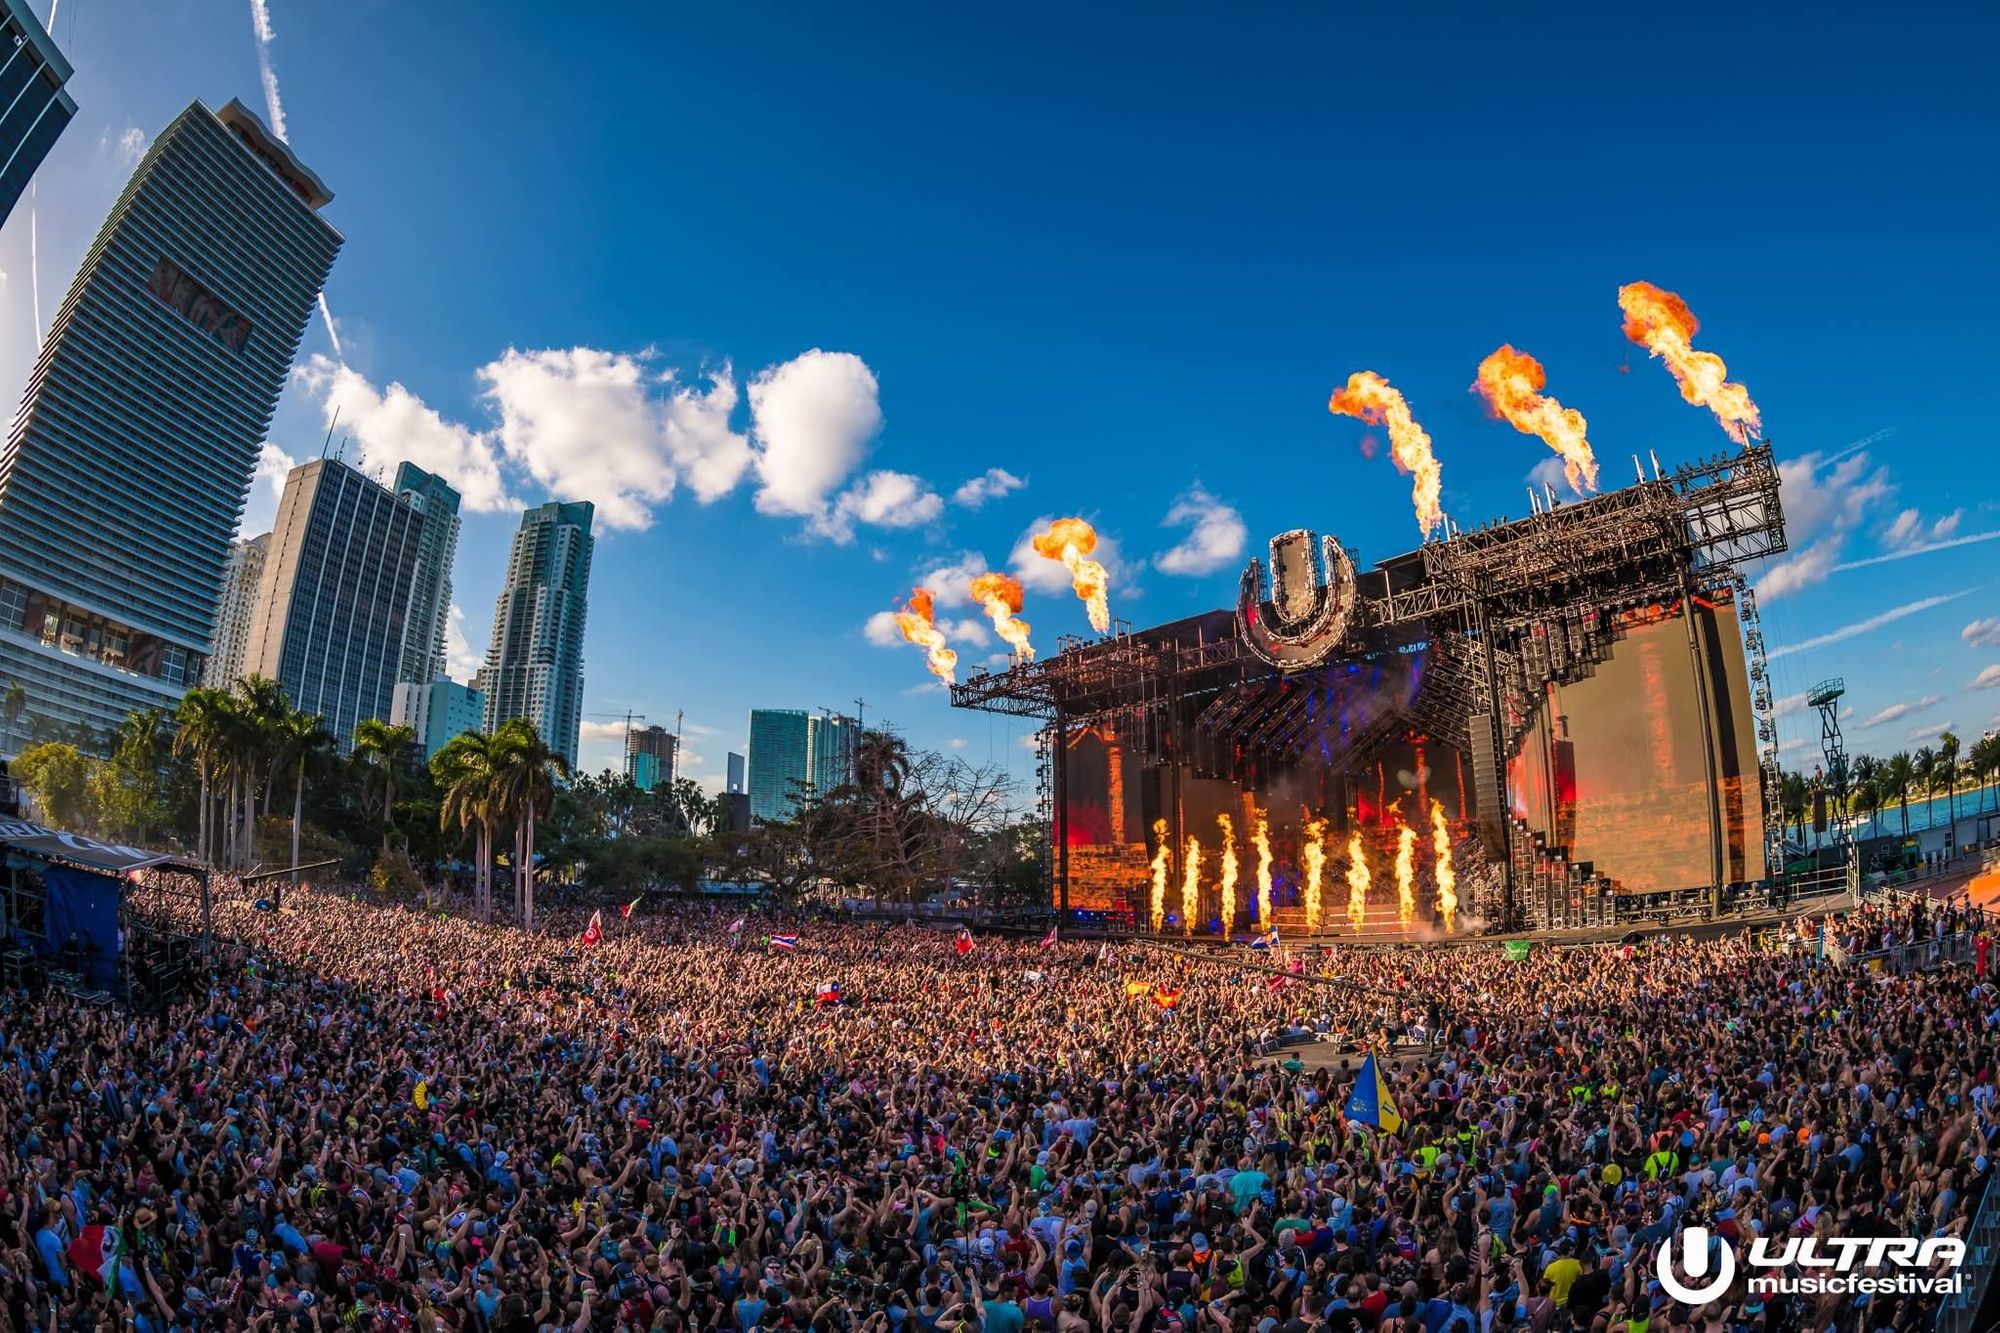 ULTRA MUSIC FESTIVAL STILL HAS YET TO SIGN CONTRACTS FOR 2020 EVENT